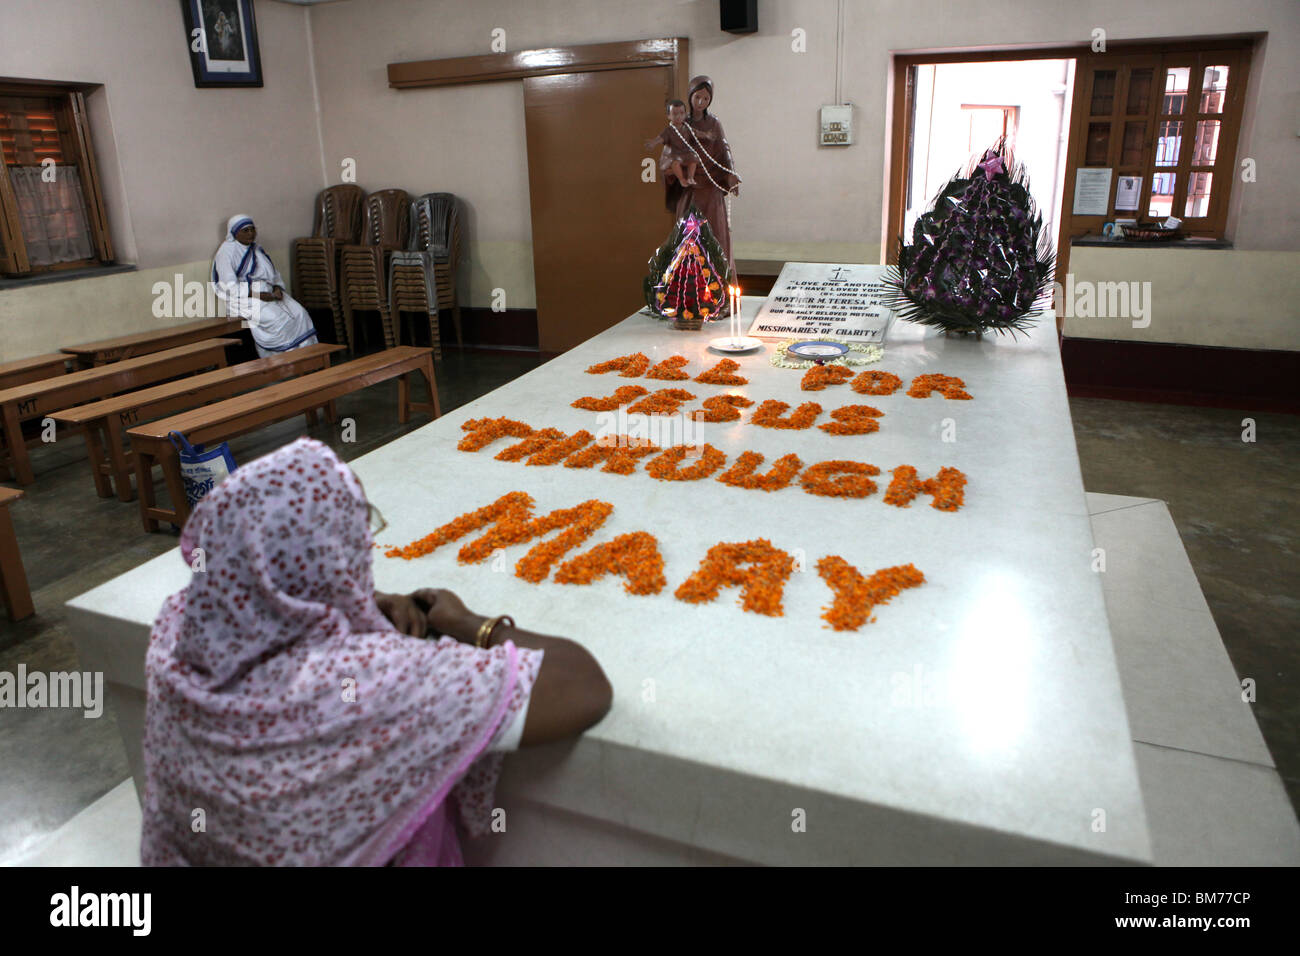 A num prays at the tomb of Mother Teresa at Mother House in Kolkata, formerly called Calcutta in West Bengal, India. Stock Photo